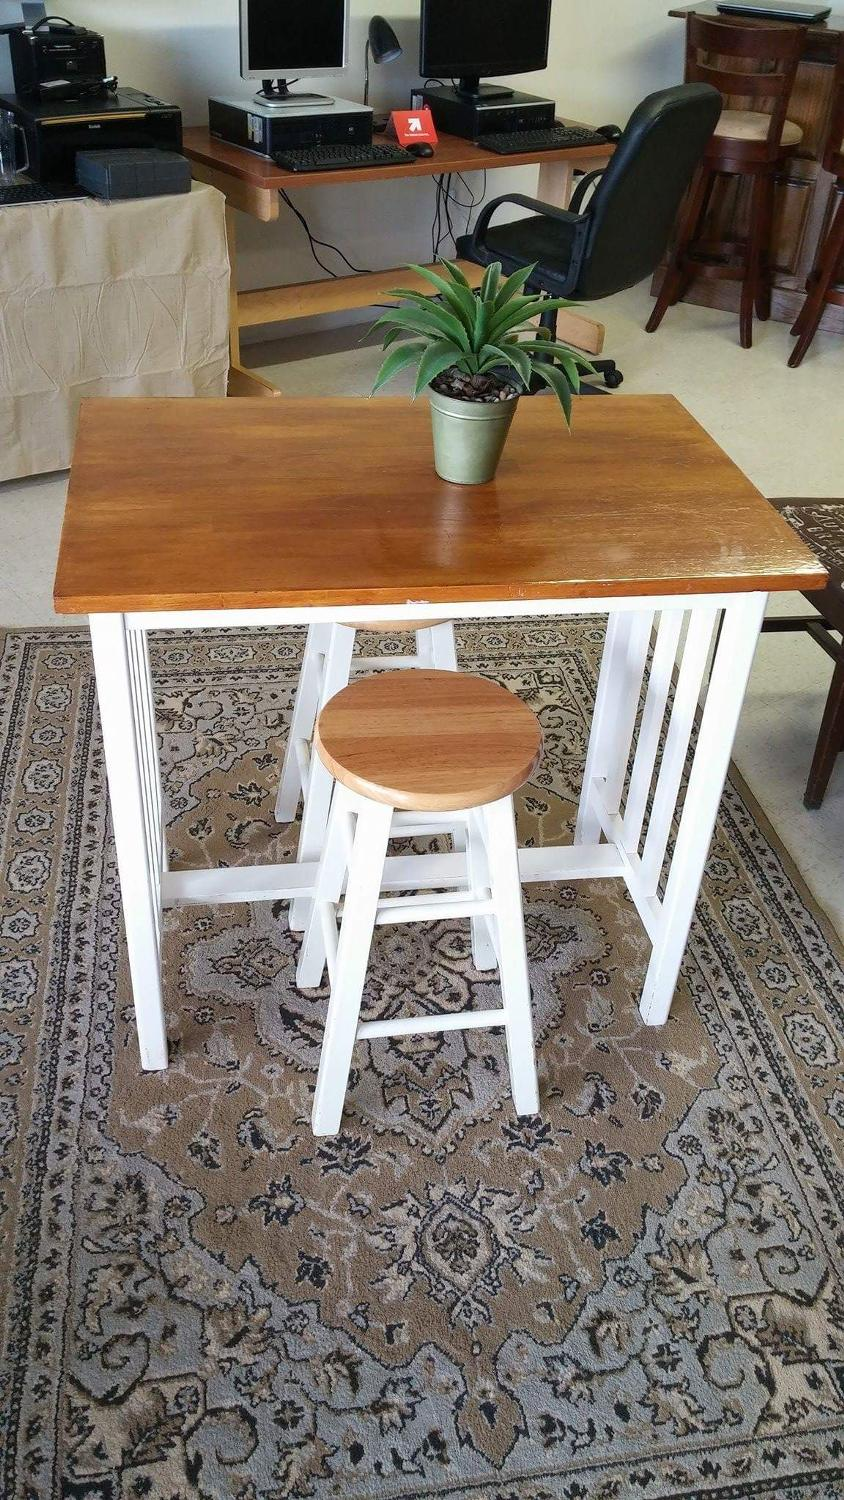 Best The Cutest Table Ever For Sale In Gulfport Mississippi For 2018